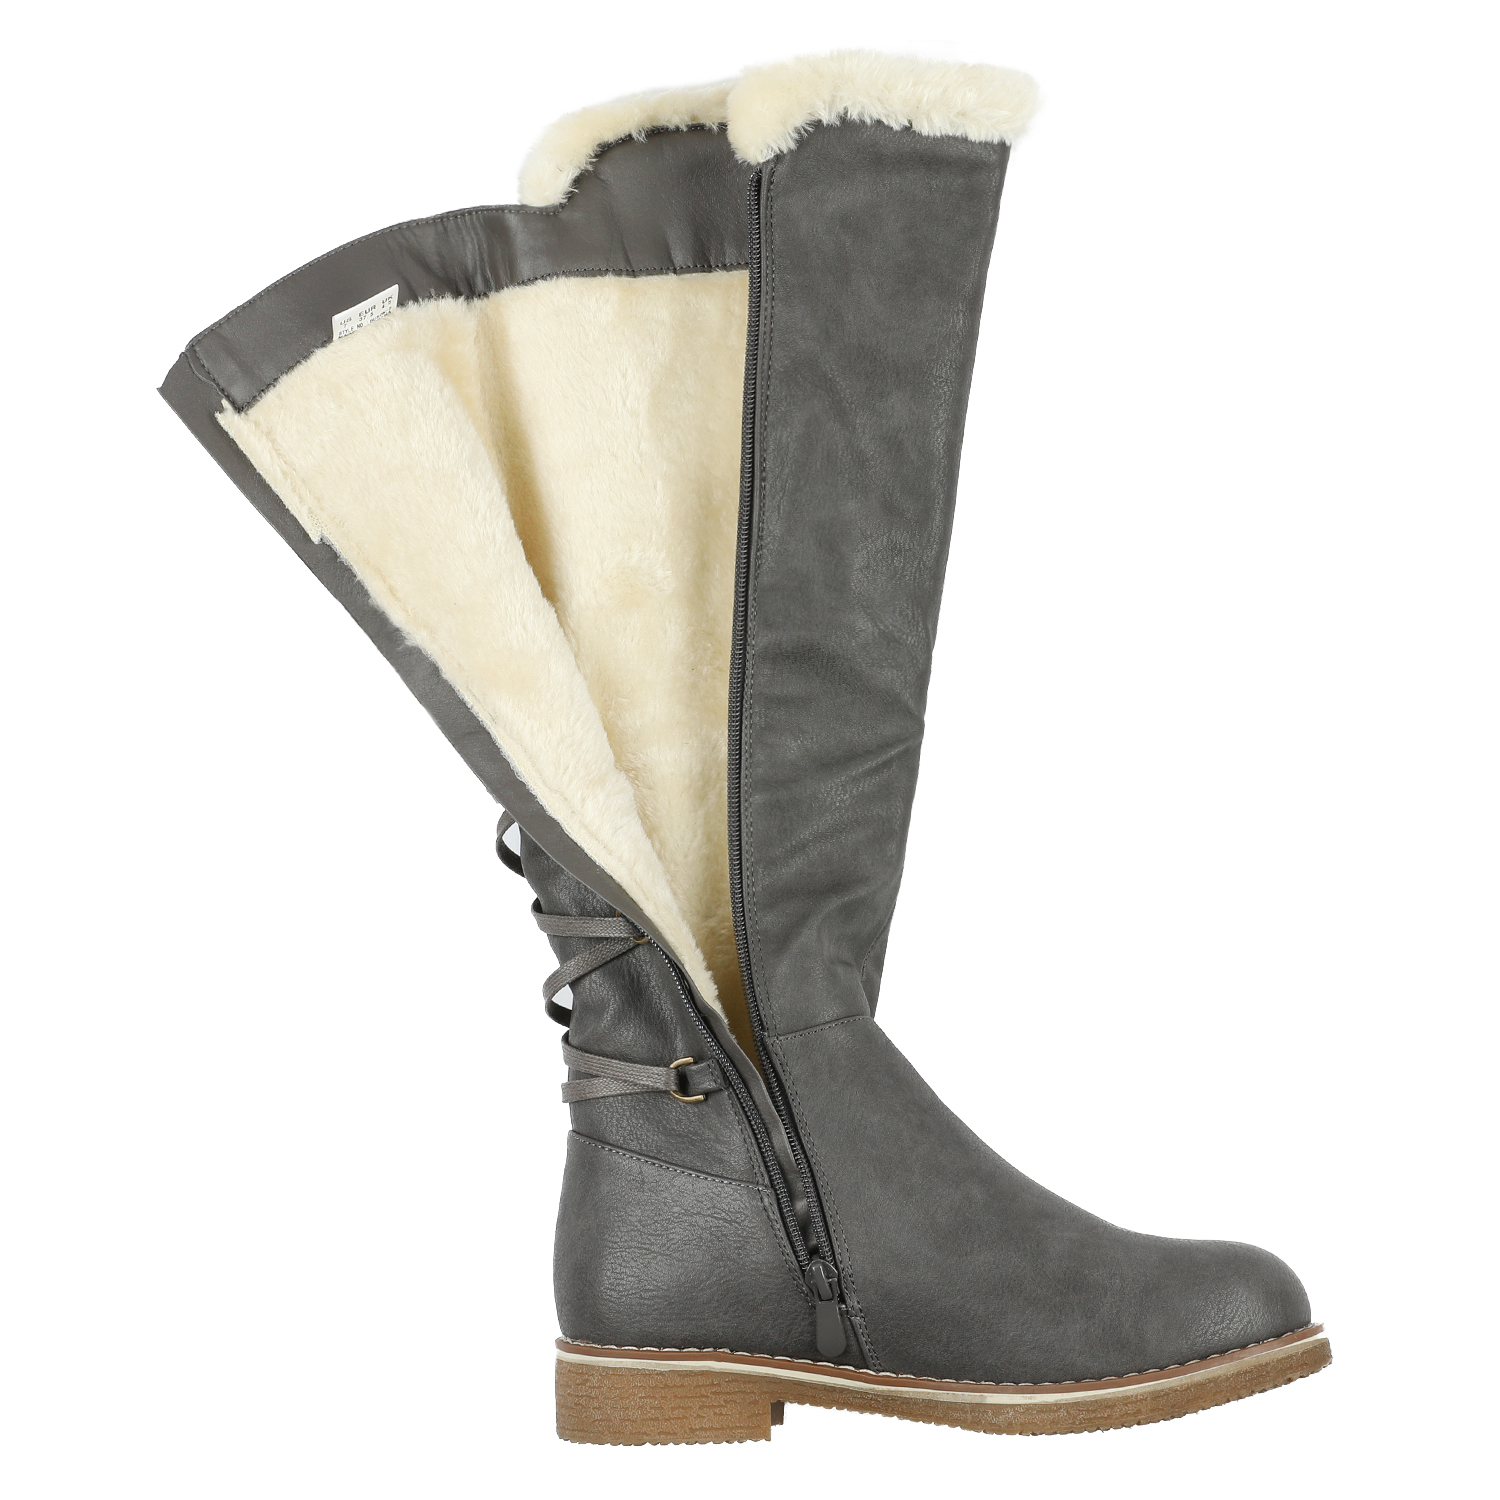 DREAM-PAIRS-Womens-Knee-High-Faux-Fur-Lined-Winter-Snow-Lace-Up-Zip-Combat-Boots thumbnail 19